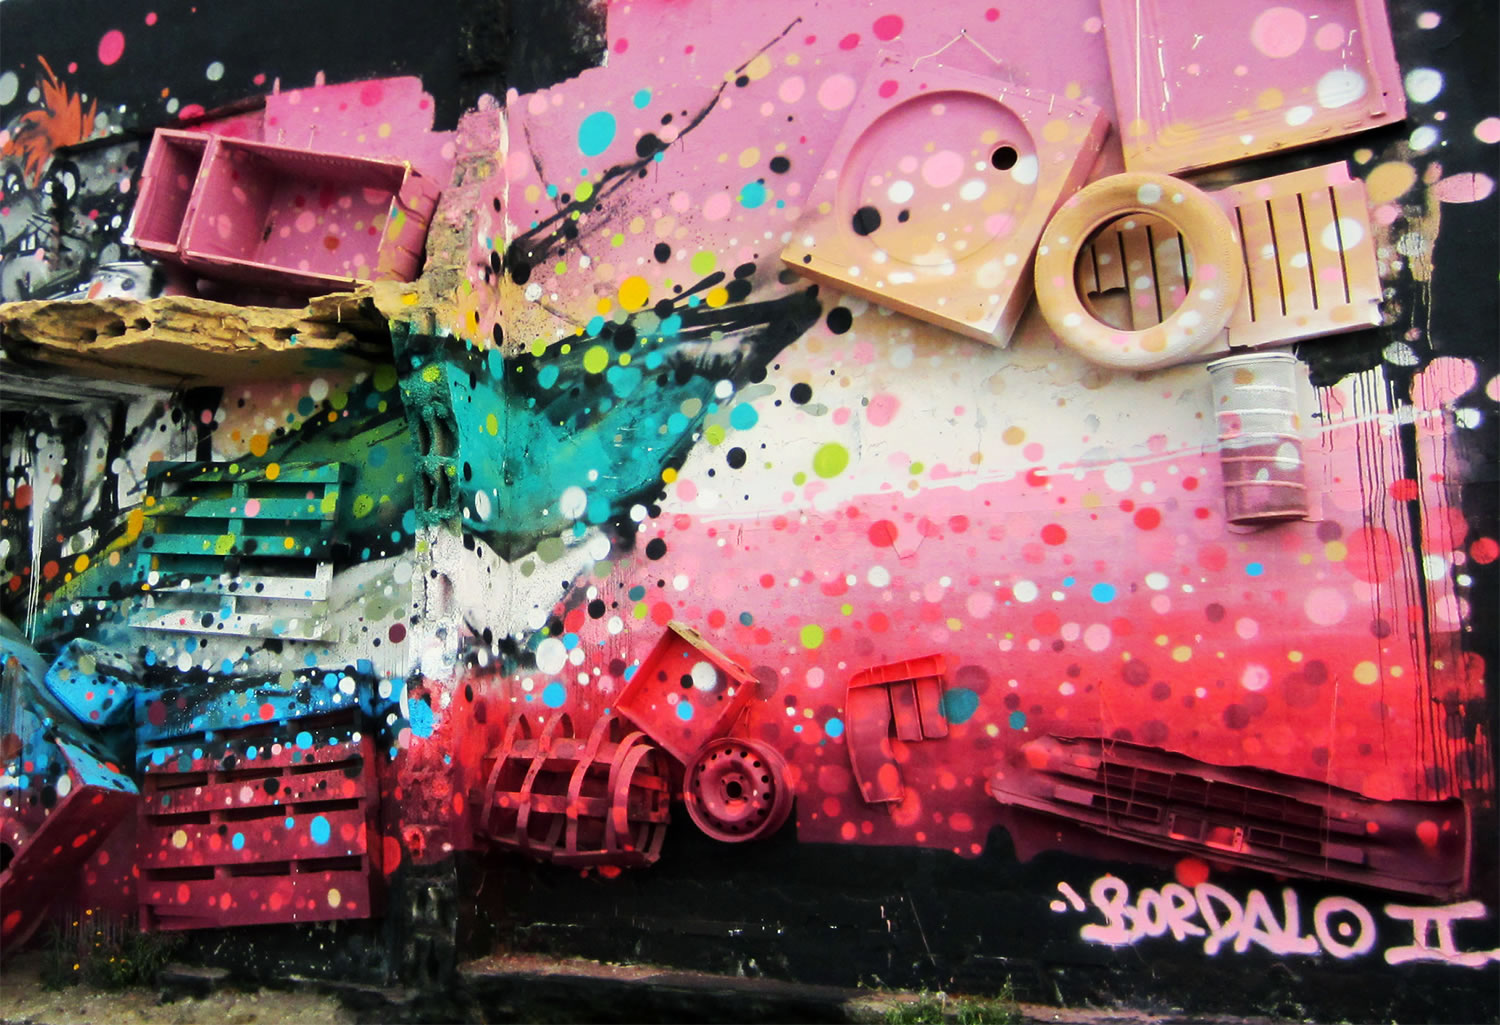 close up of pink and black mural by bordallo II